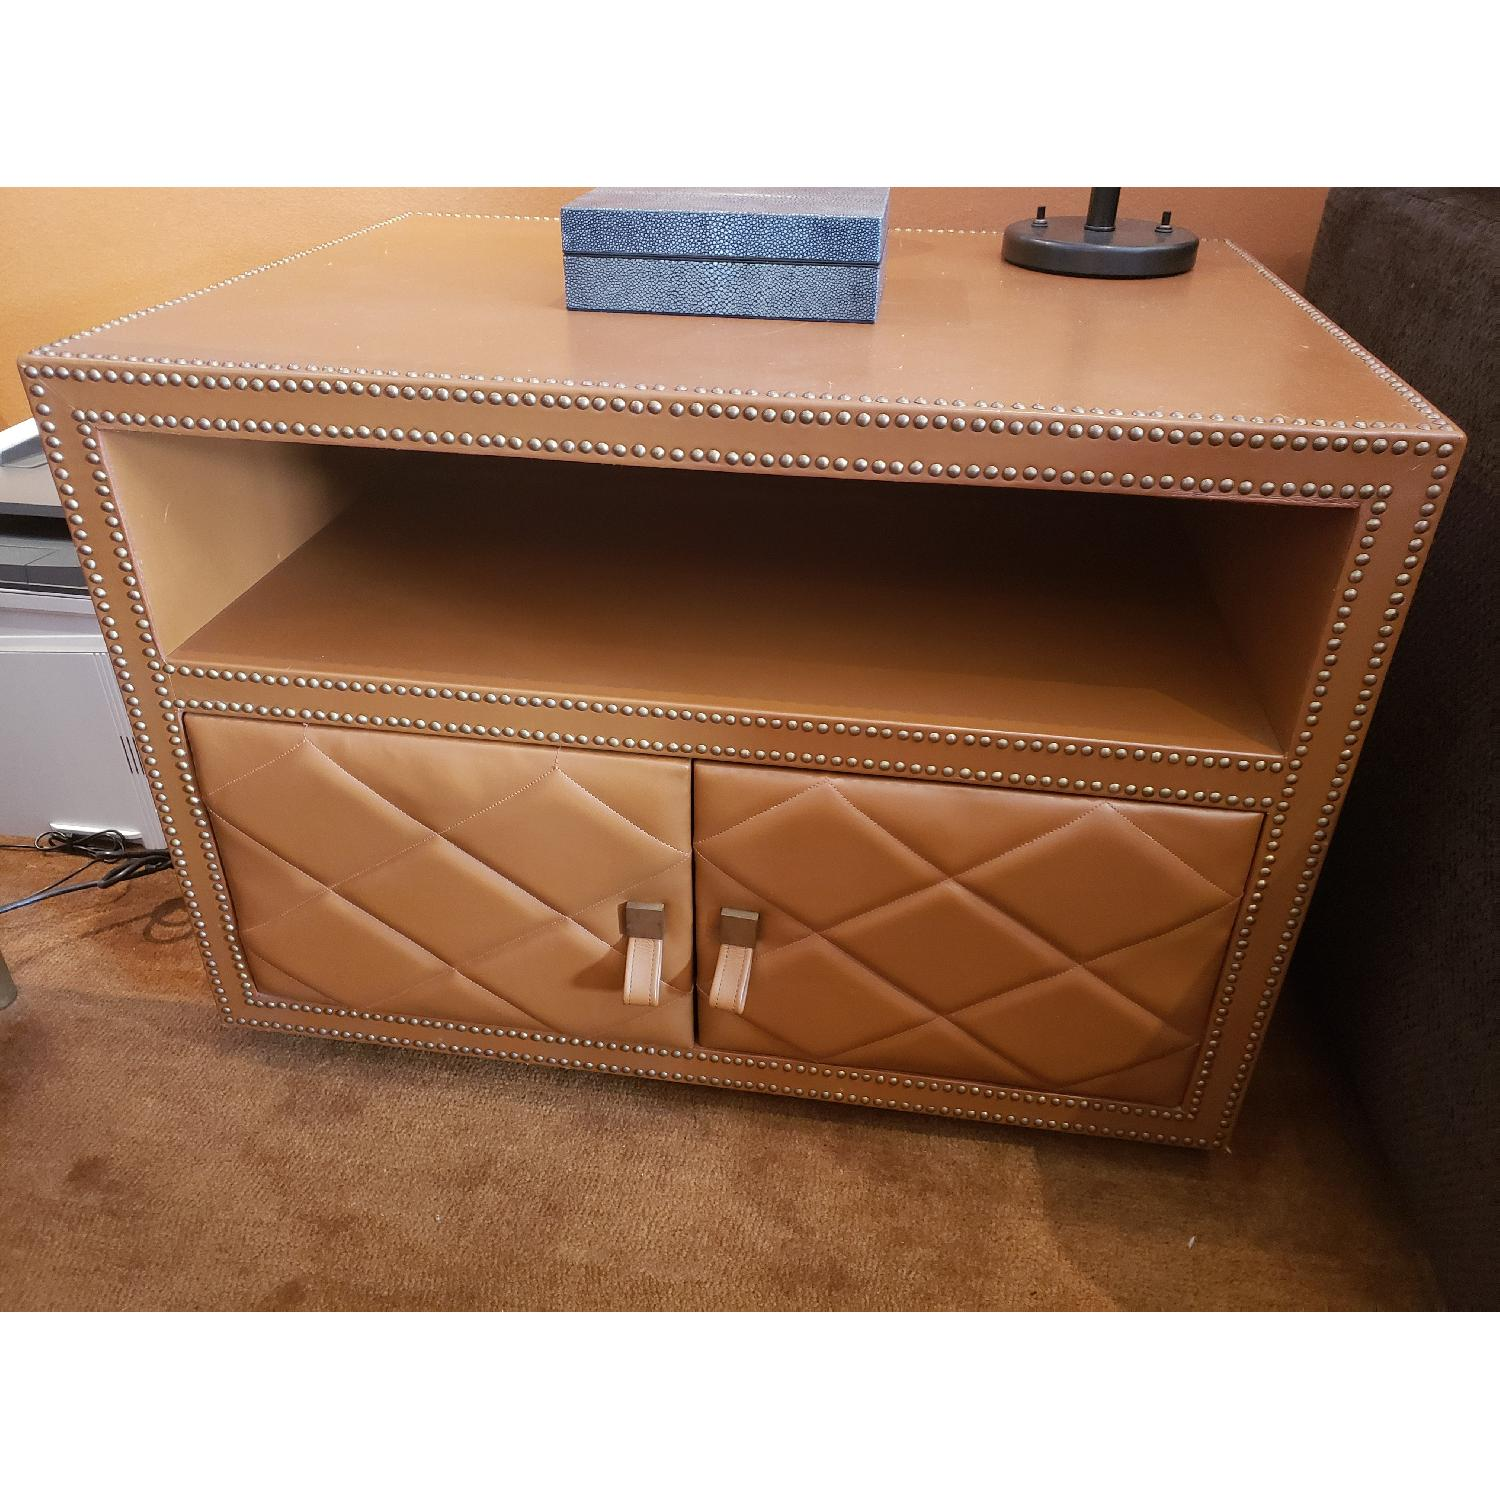 Leather Wrapped Side Table w/ Silver Nail Head Trim - image-3